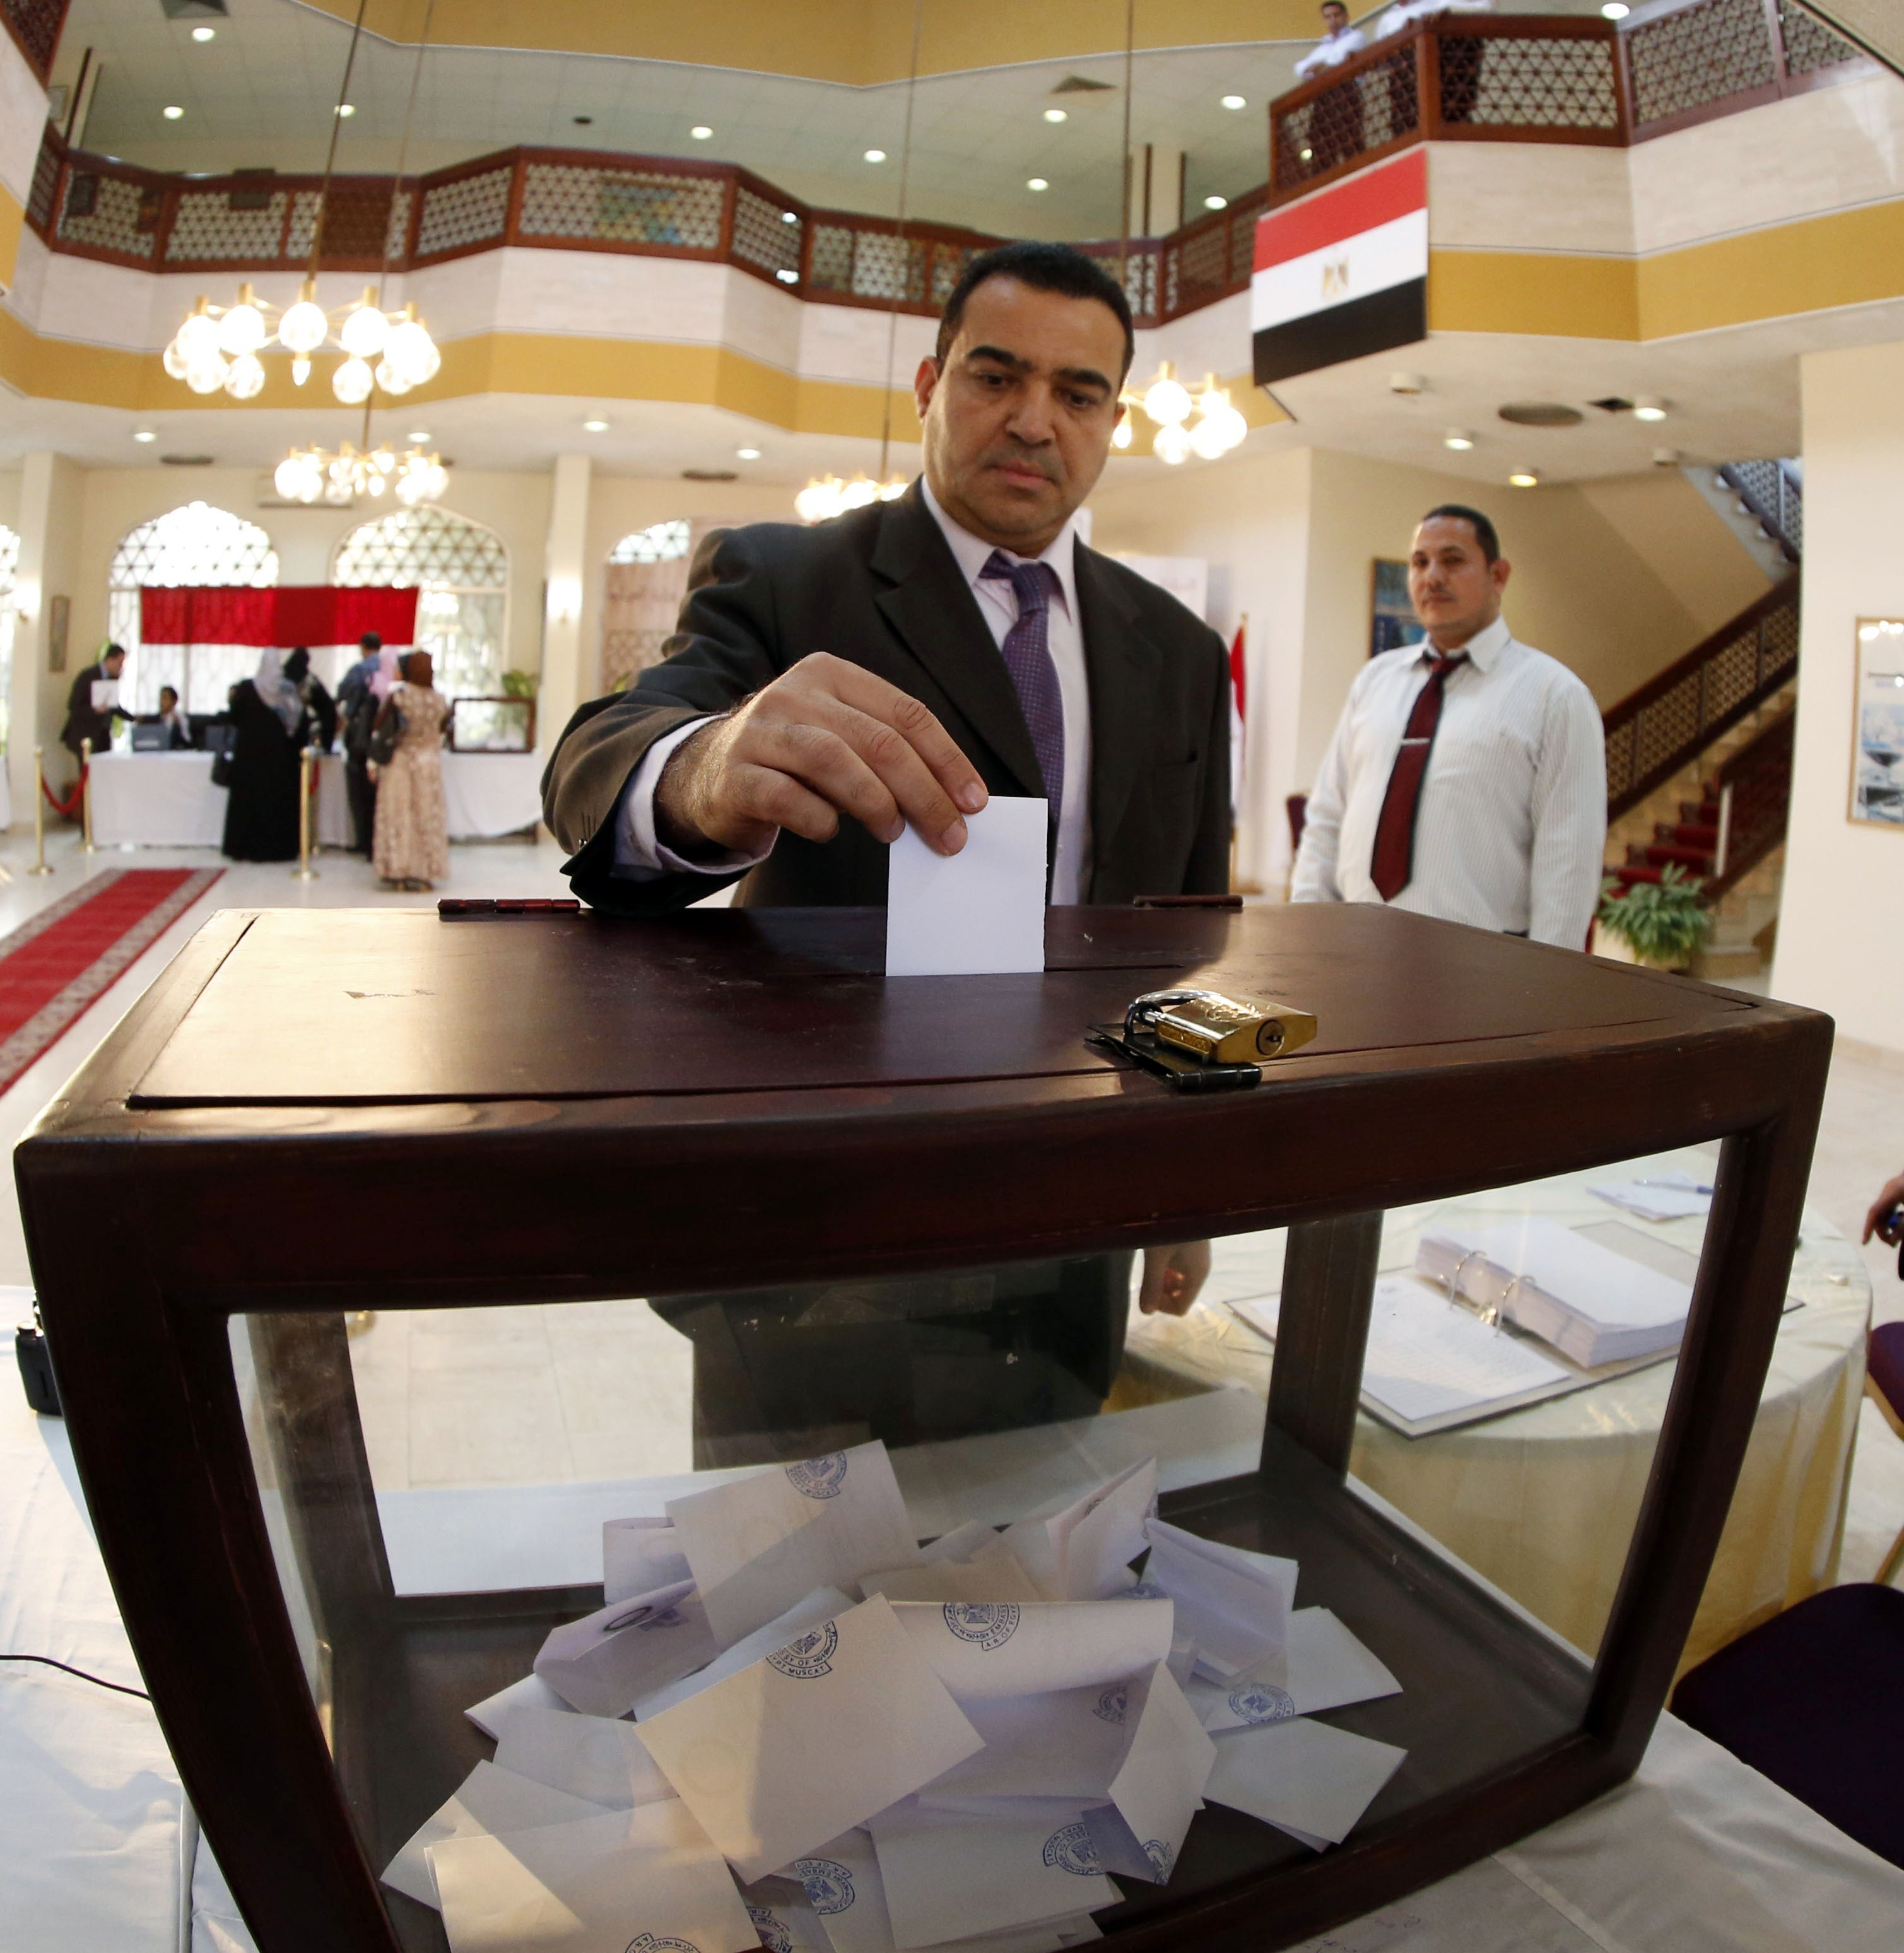 An Egyptian living in Oman casts his vote in January 2014 on Egypt's constitution.